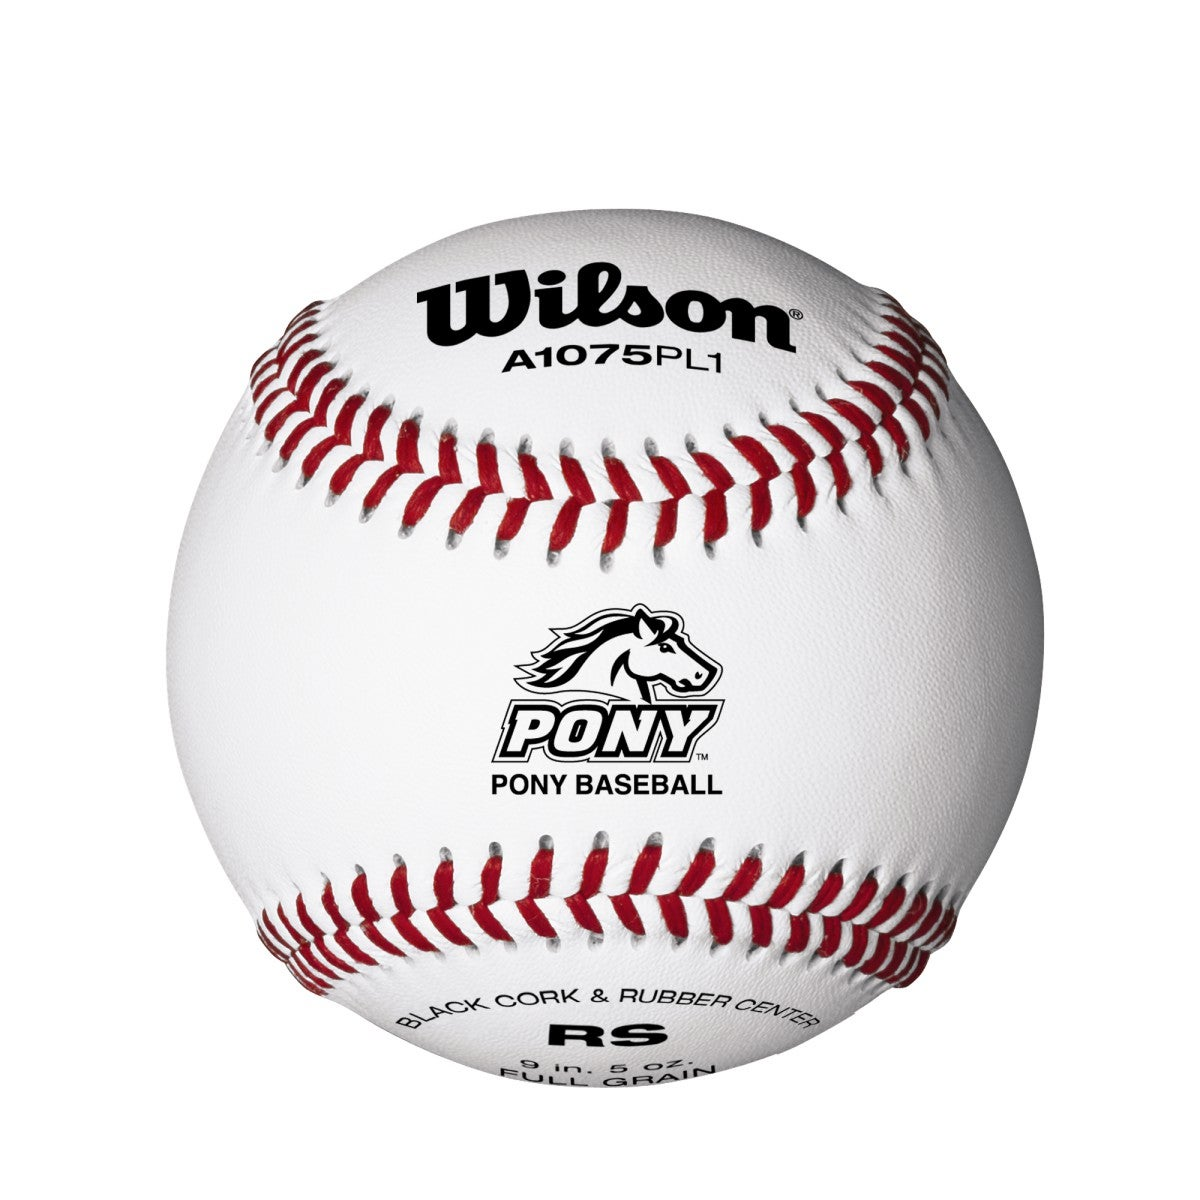 A1075 League Series Pony Baseballs